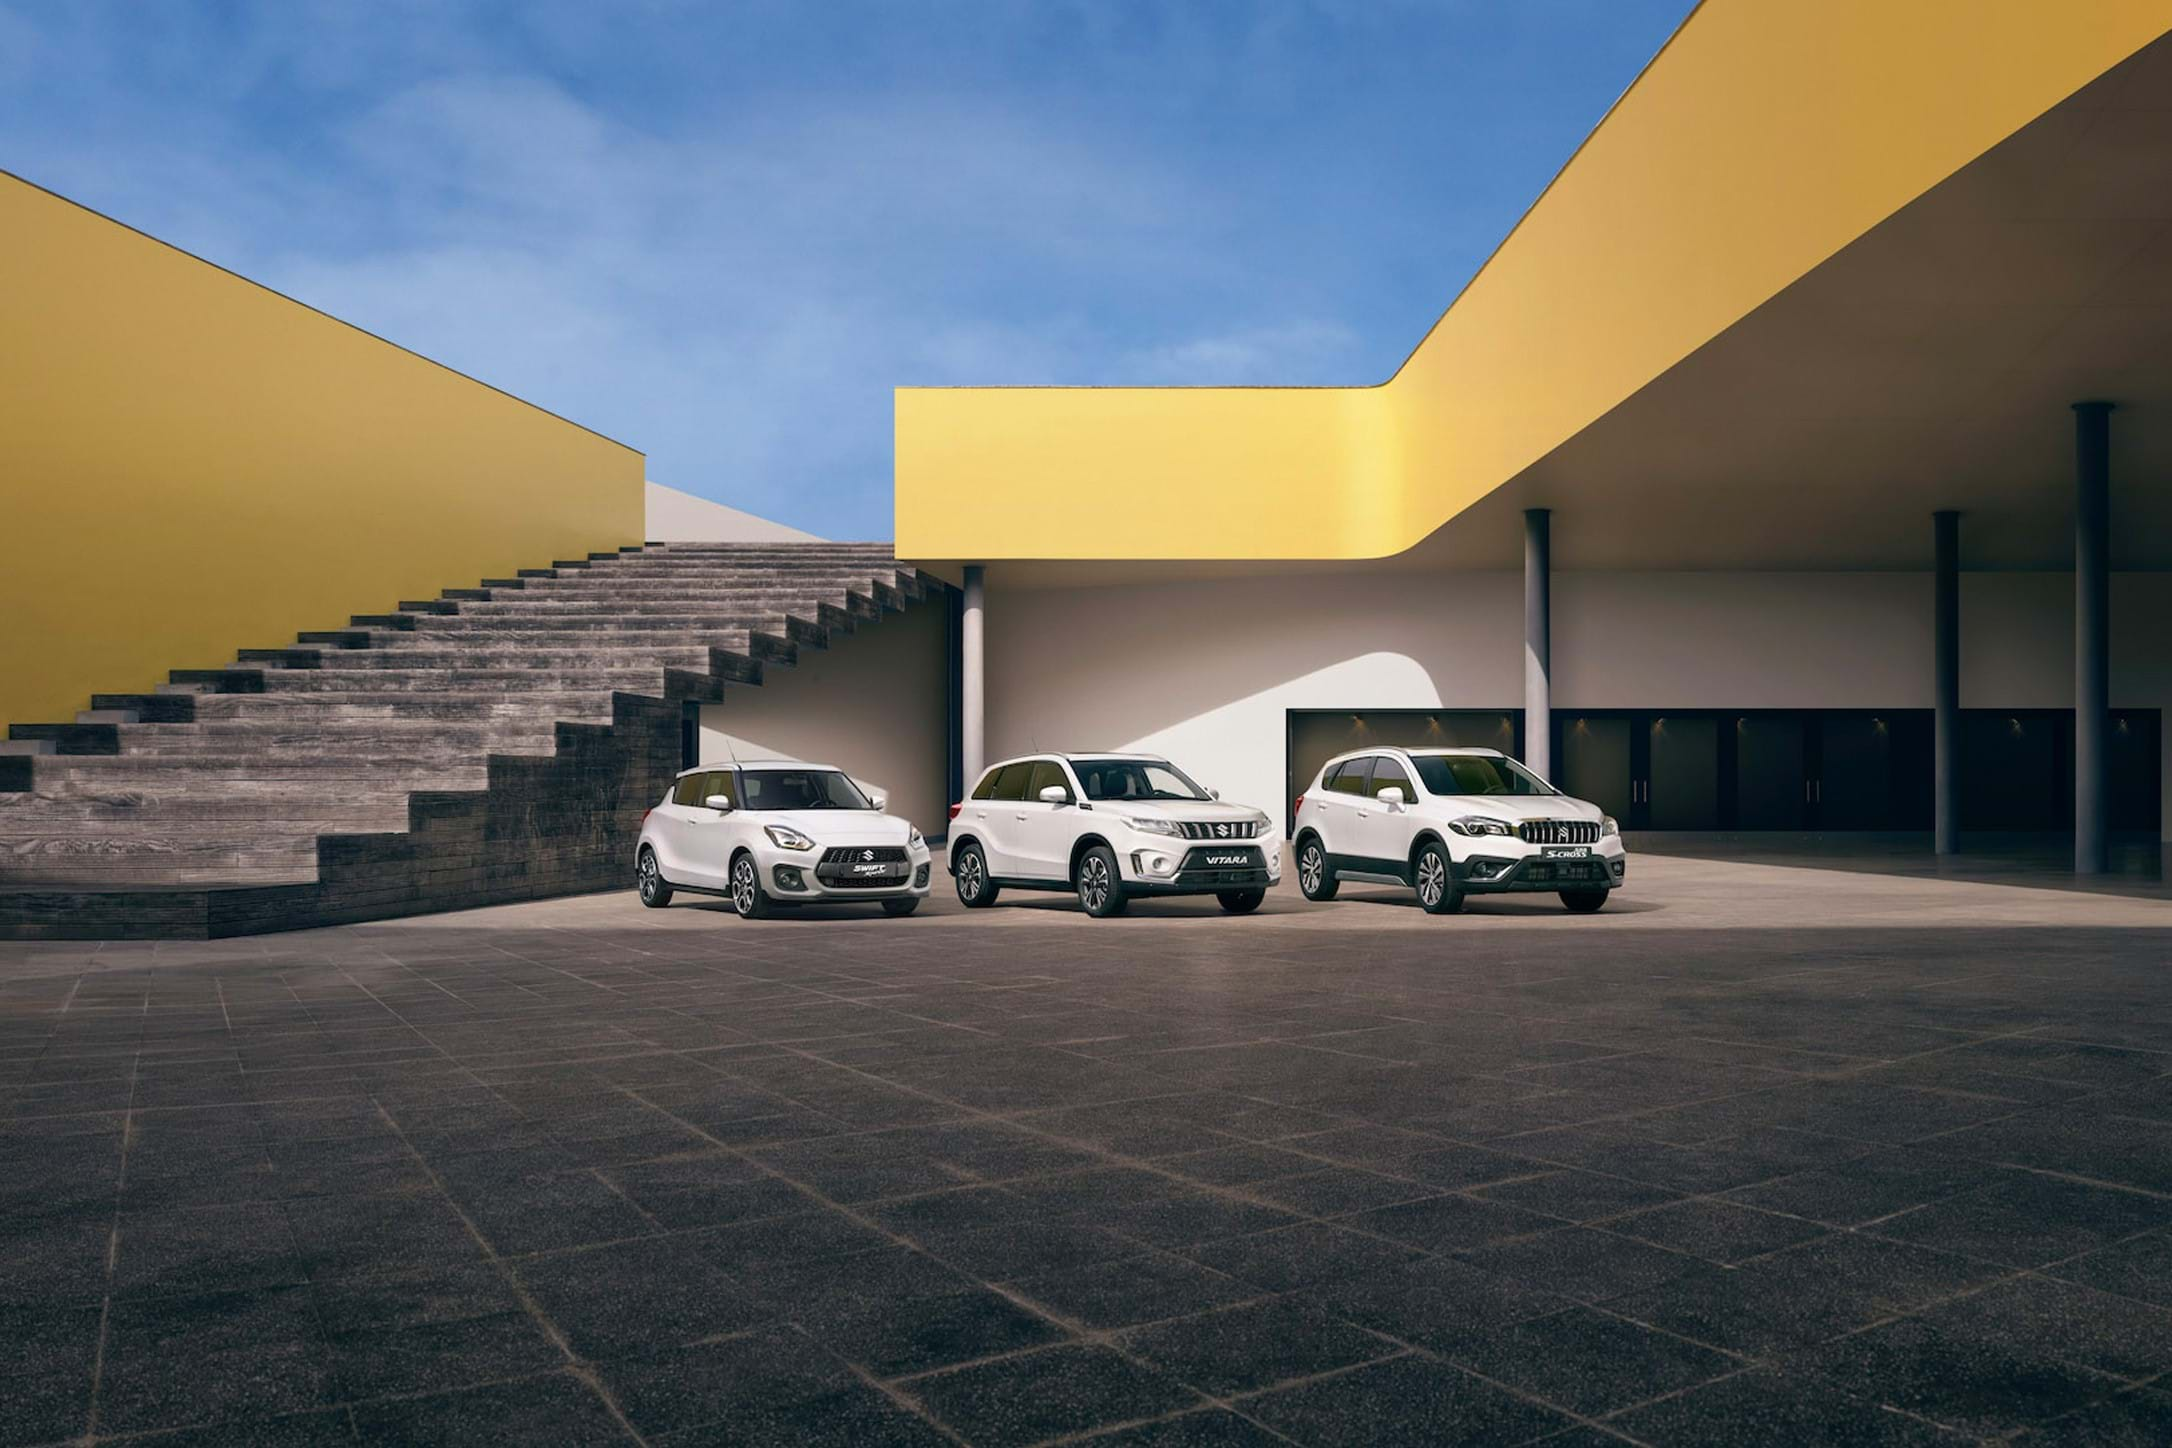 A Suzuki Swift sport, Vitara and S-Cross lined up in a courtyard